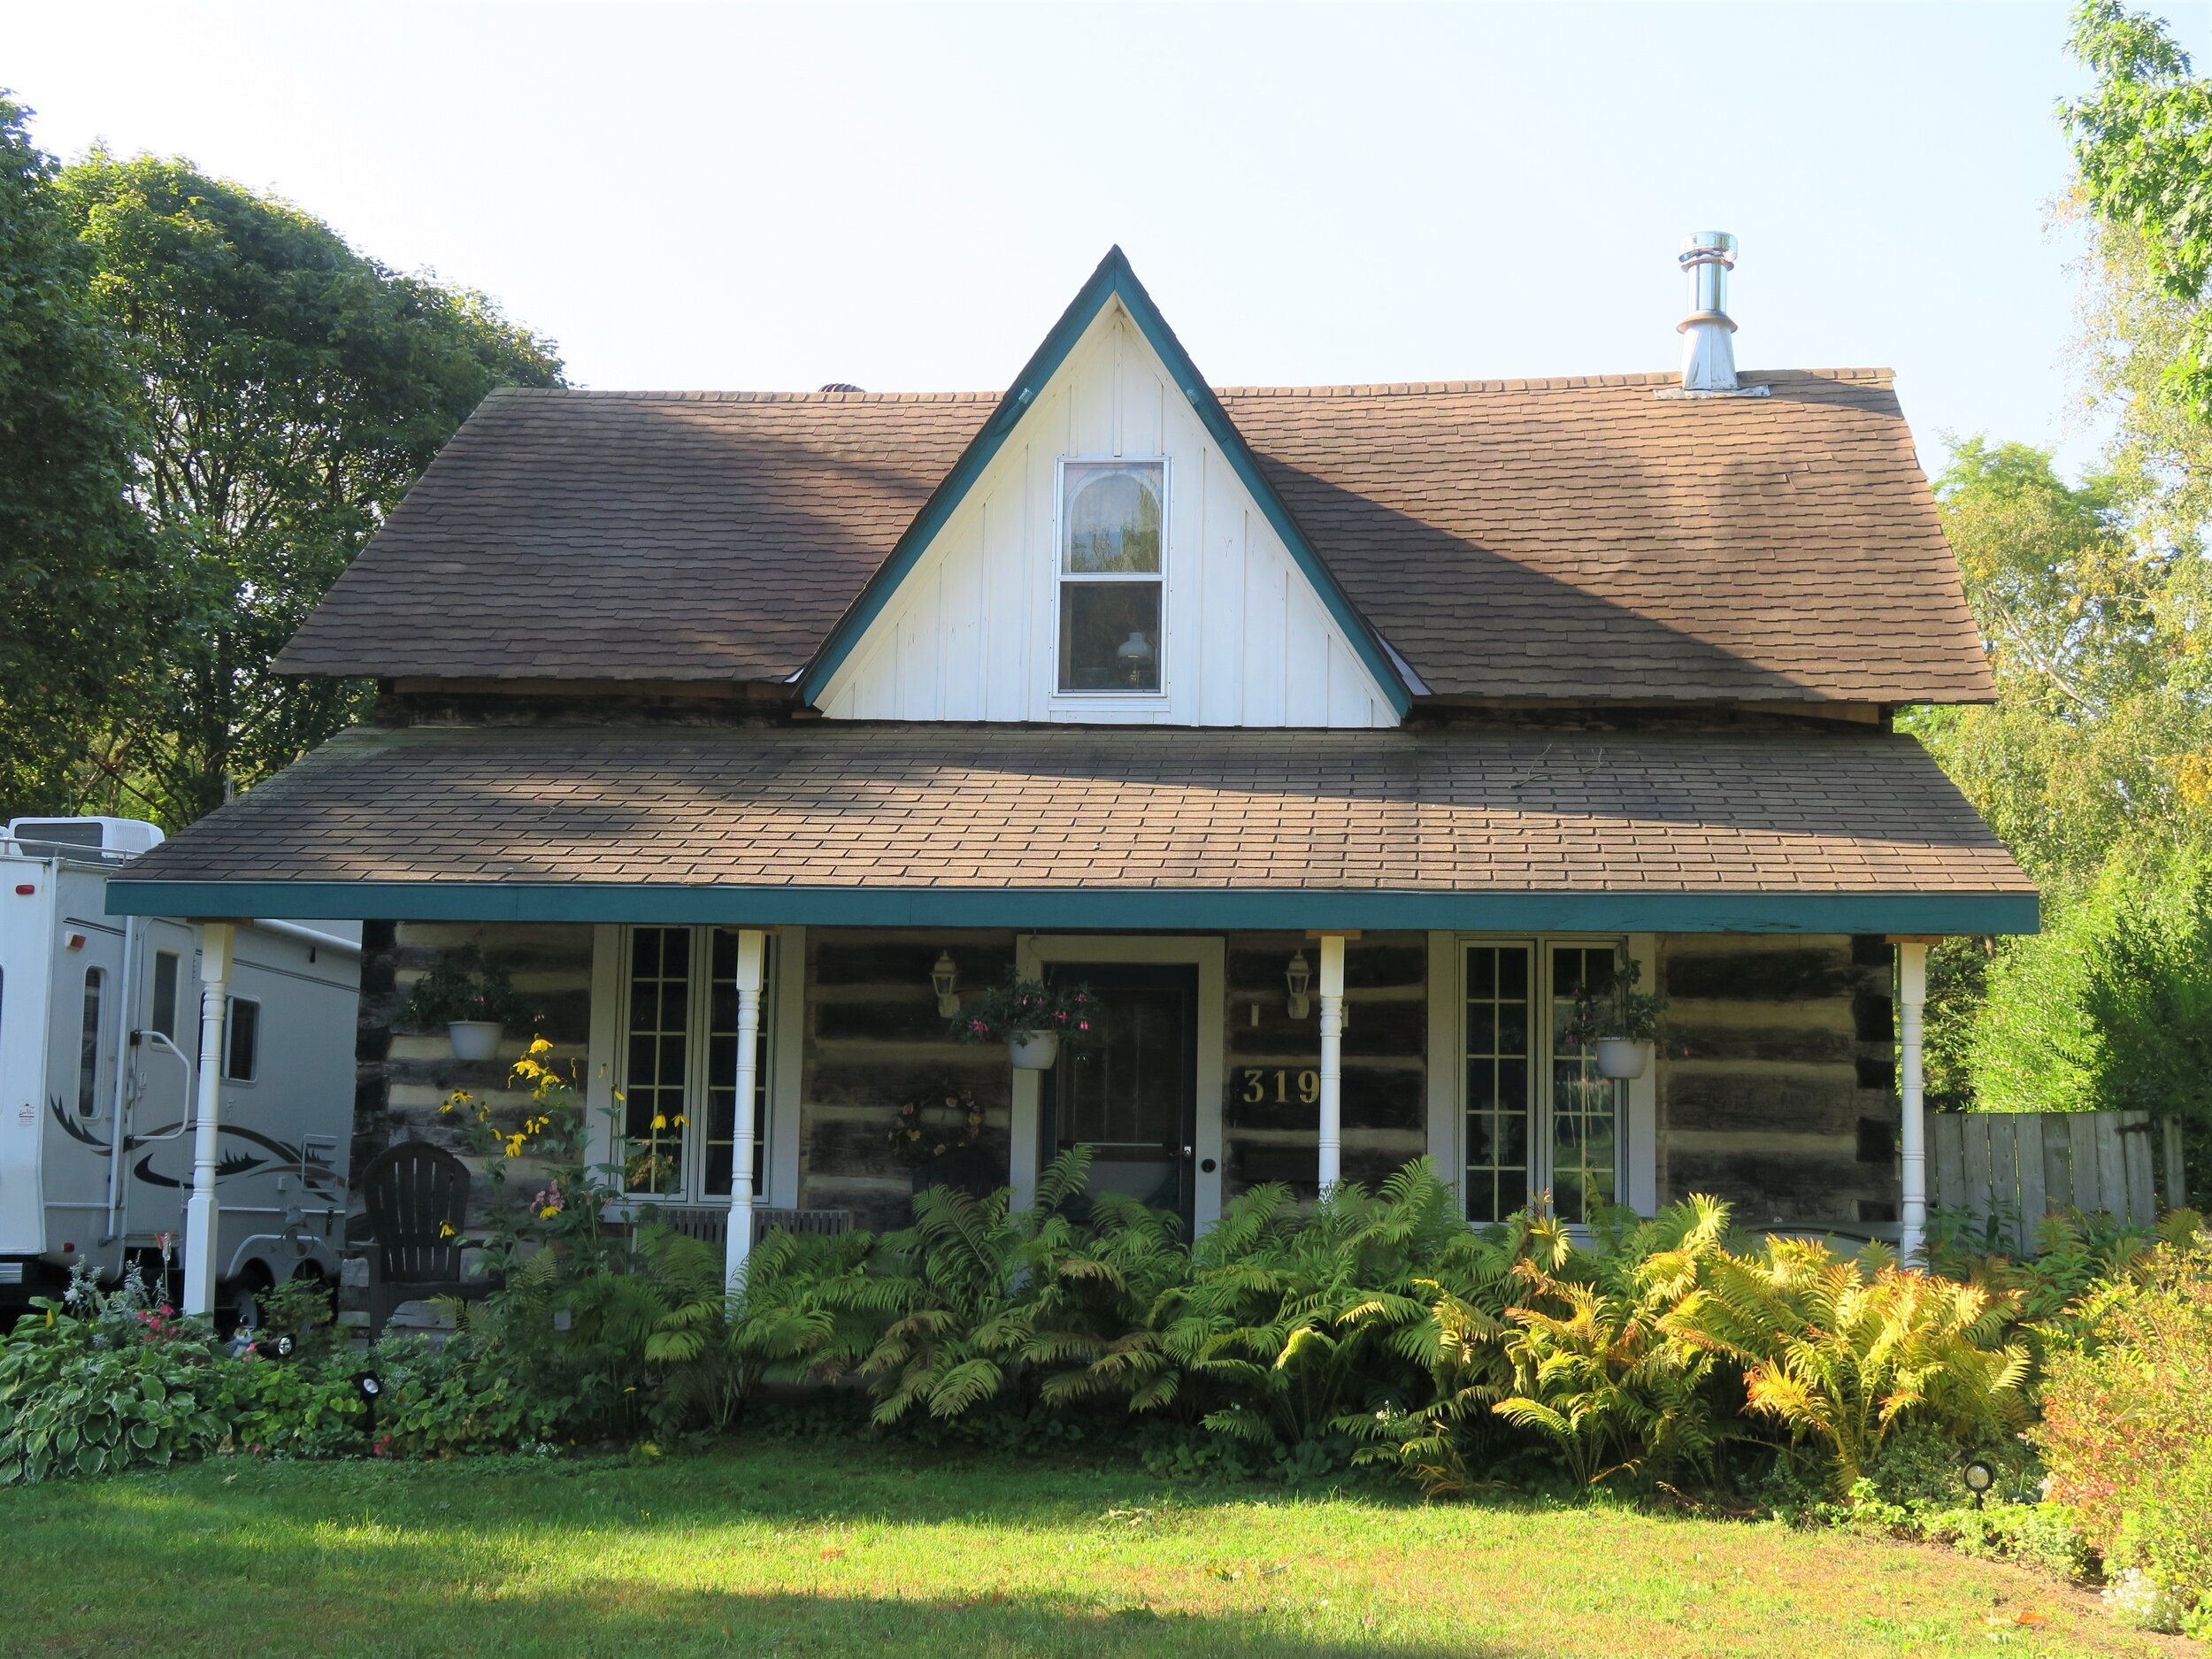 319 Saugeen St, built c.1867 by John MacLean (1803-1882) is a log house with a round-headed window in the centre gable.